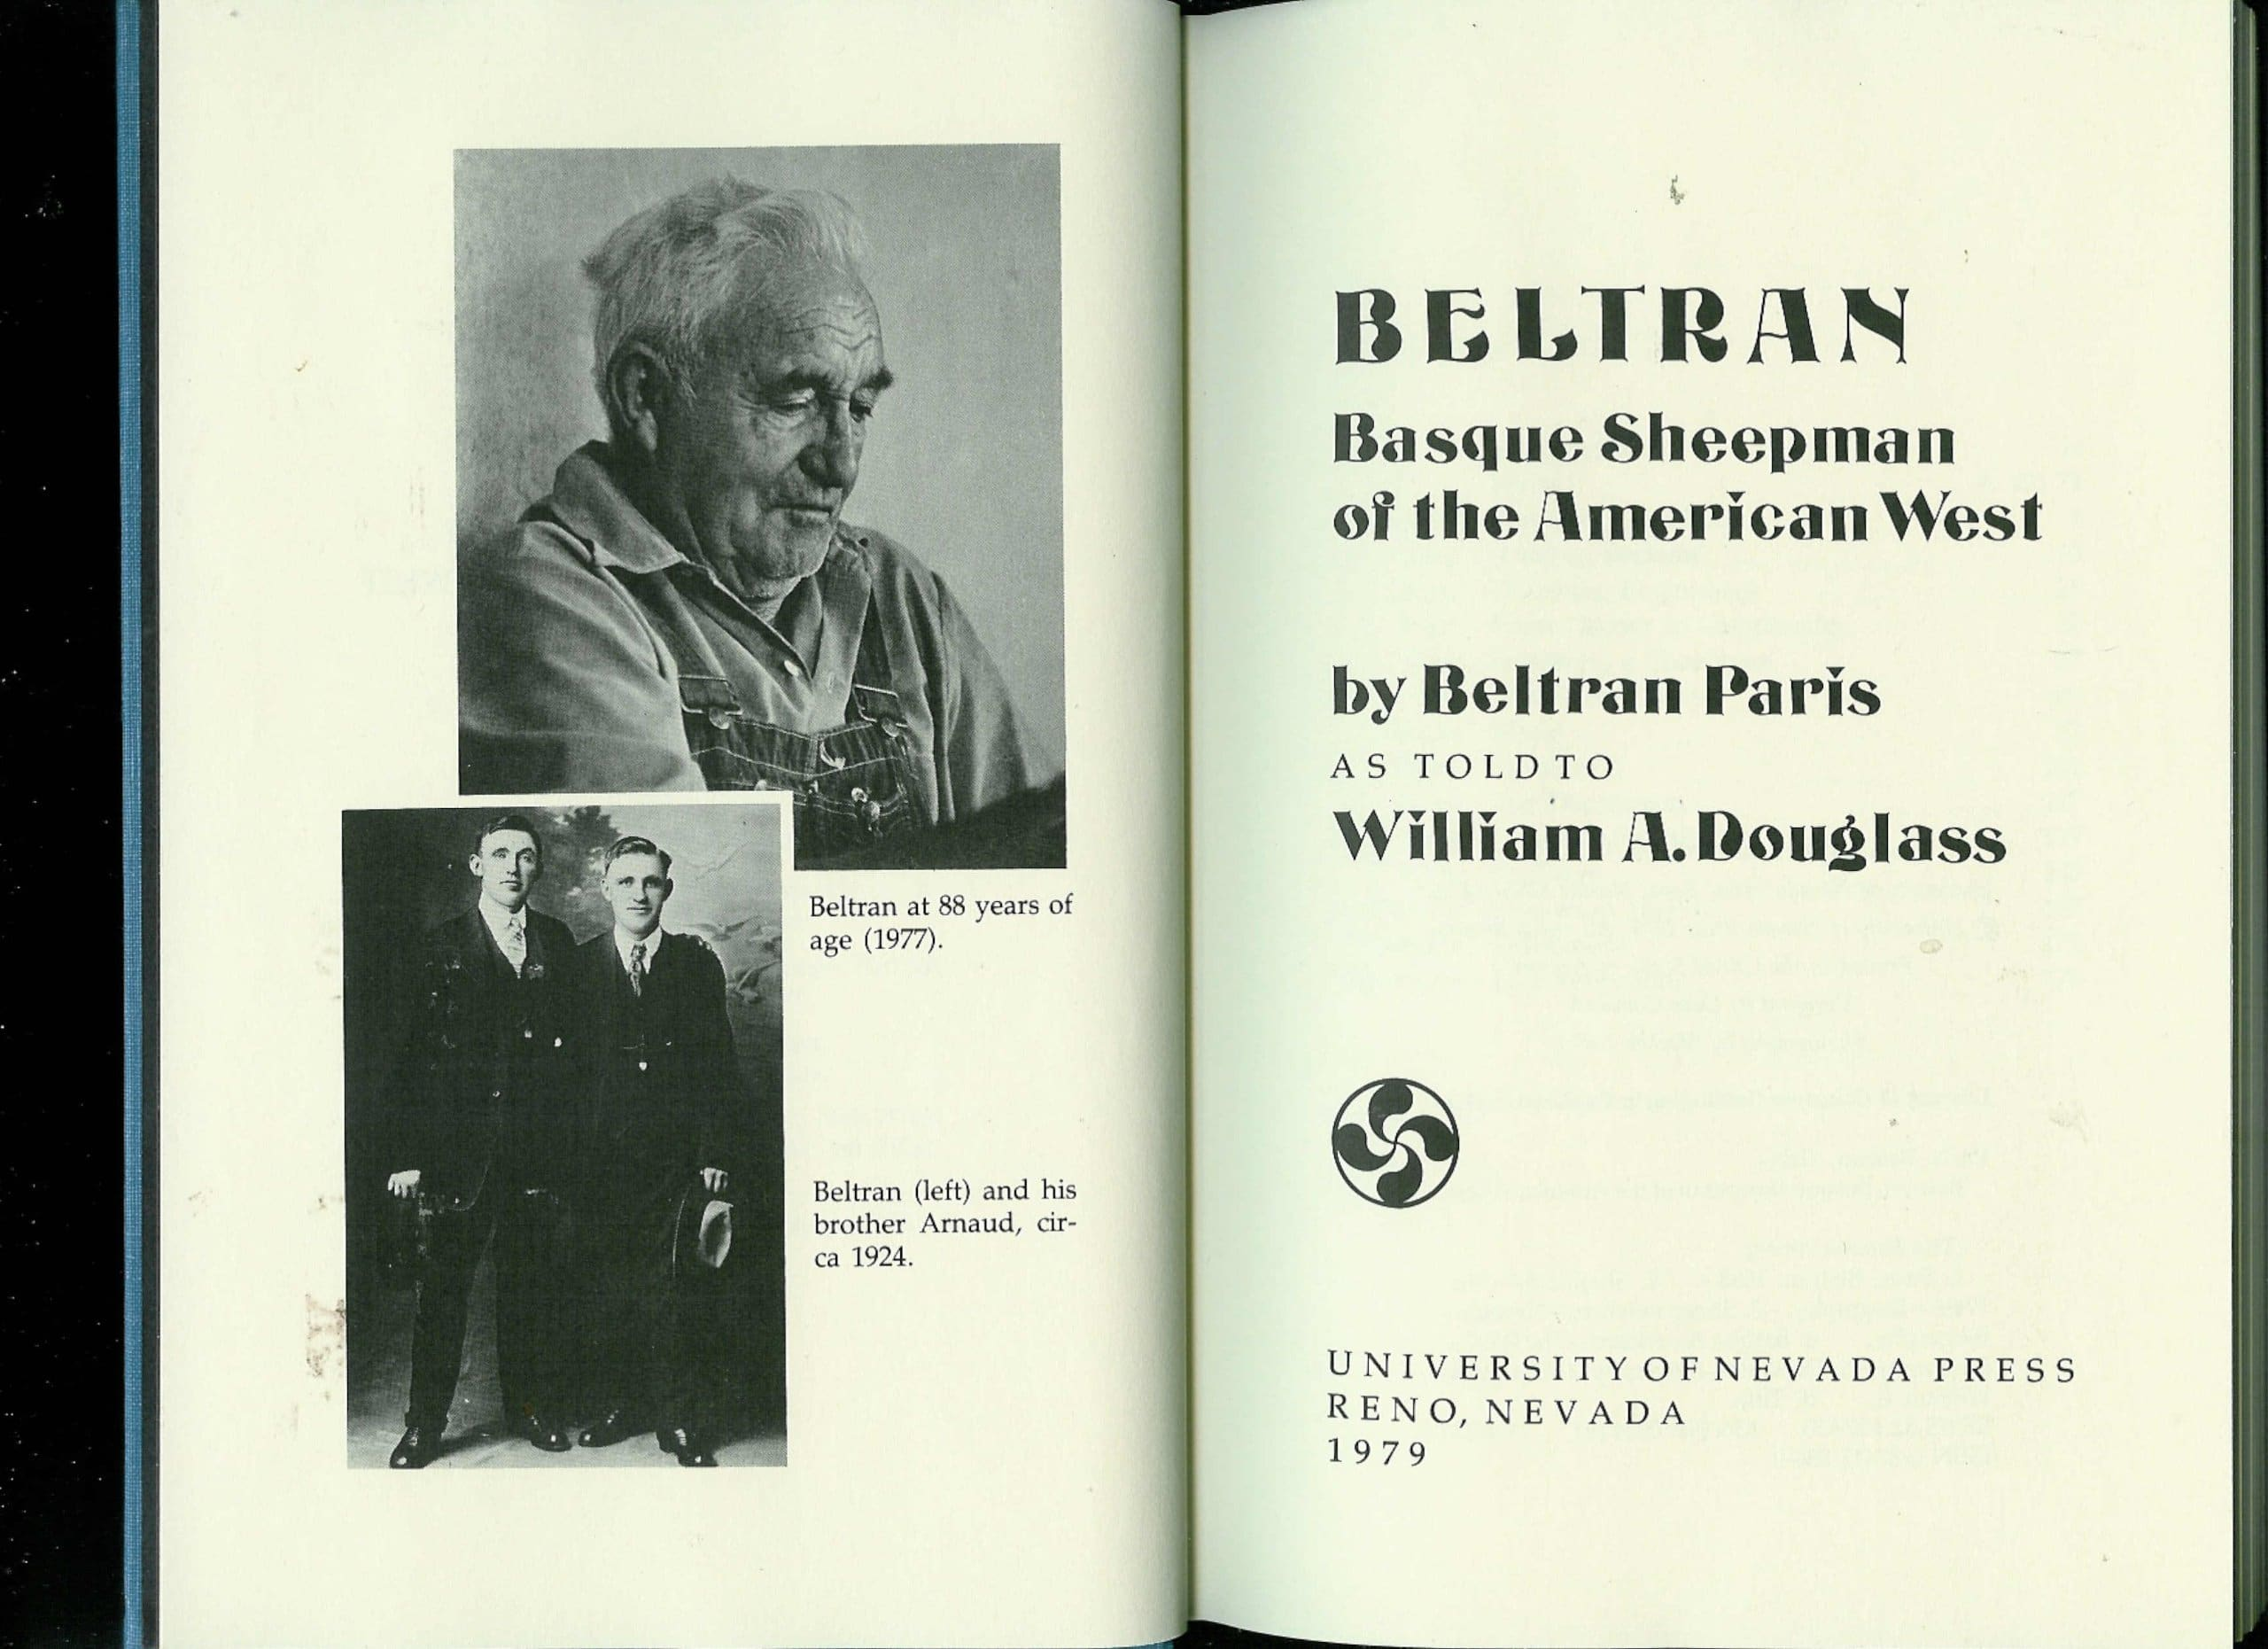 Beltran: Basque Sheepman of the American West Hardcover – Jan 1 1981 by Beltran Paris and William A. Douglass